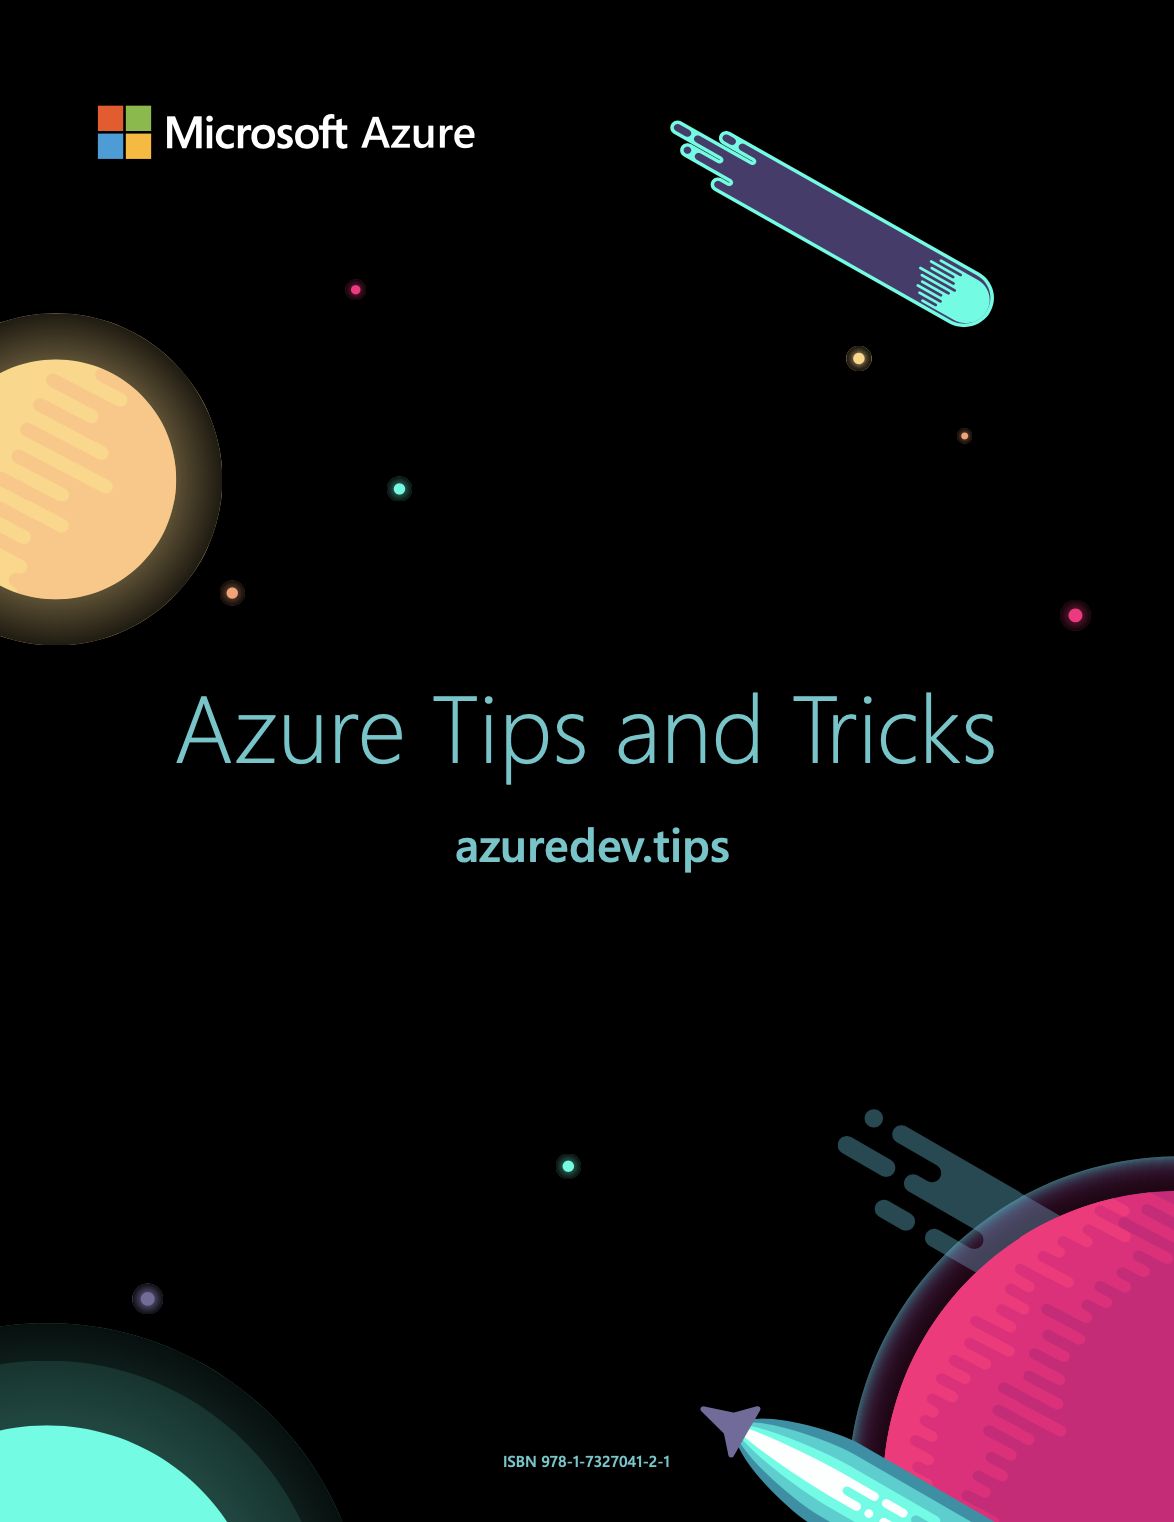 Azure Tips and Tricks Volume 1